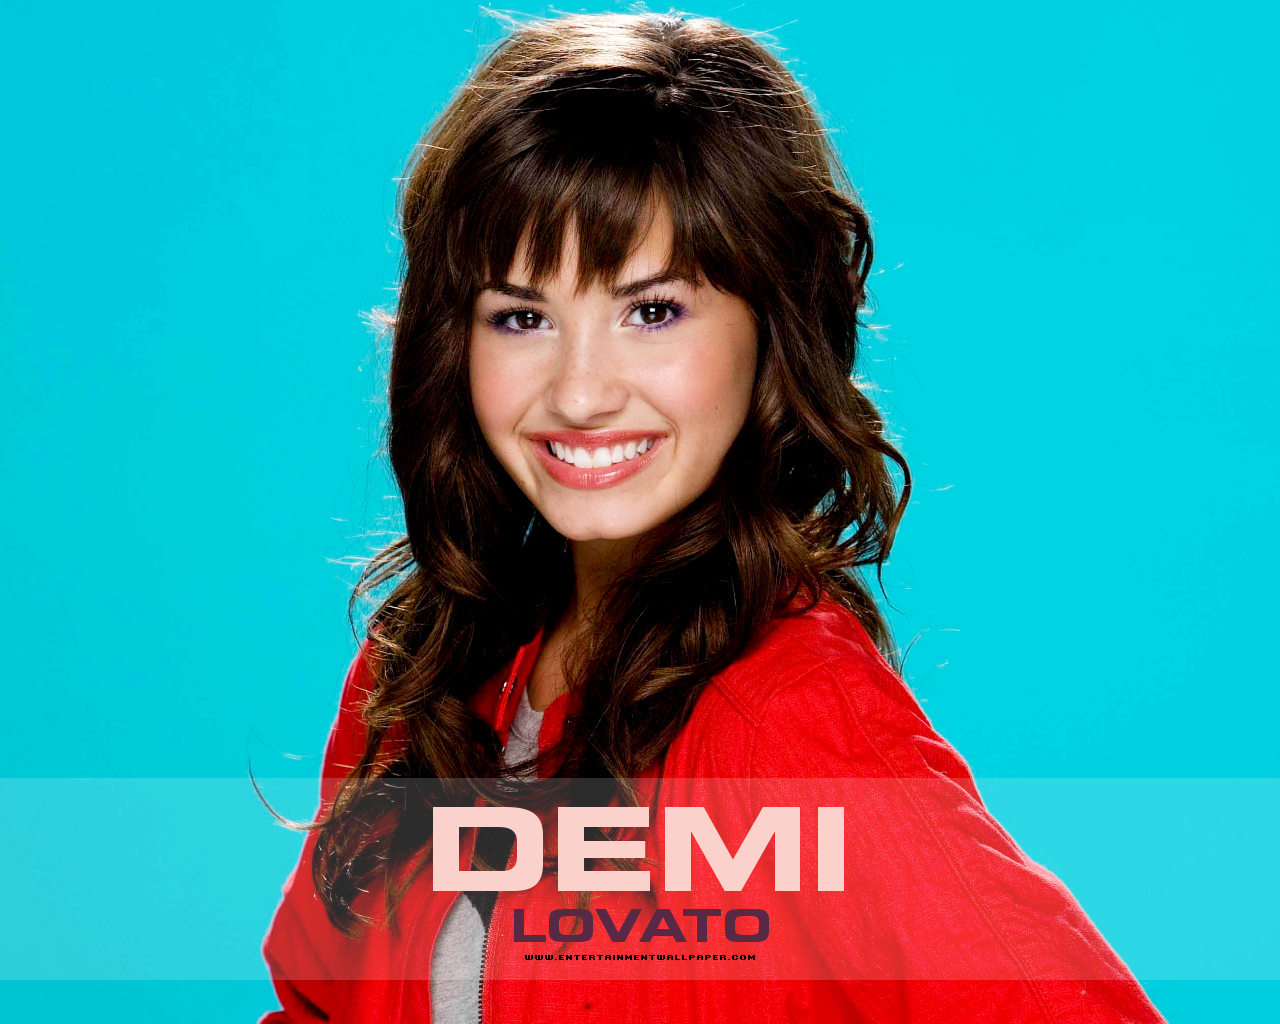 Sterren Demi lovato Wallpapers